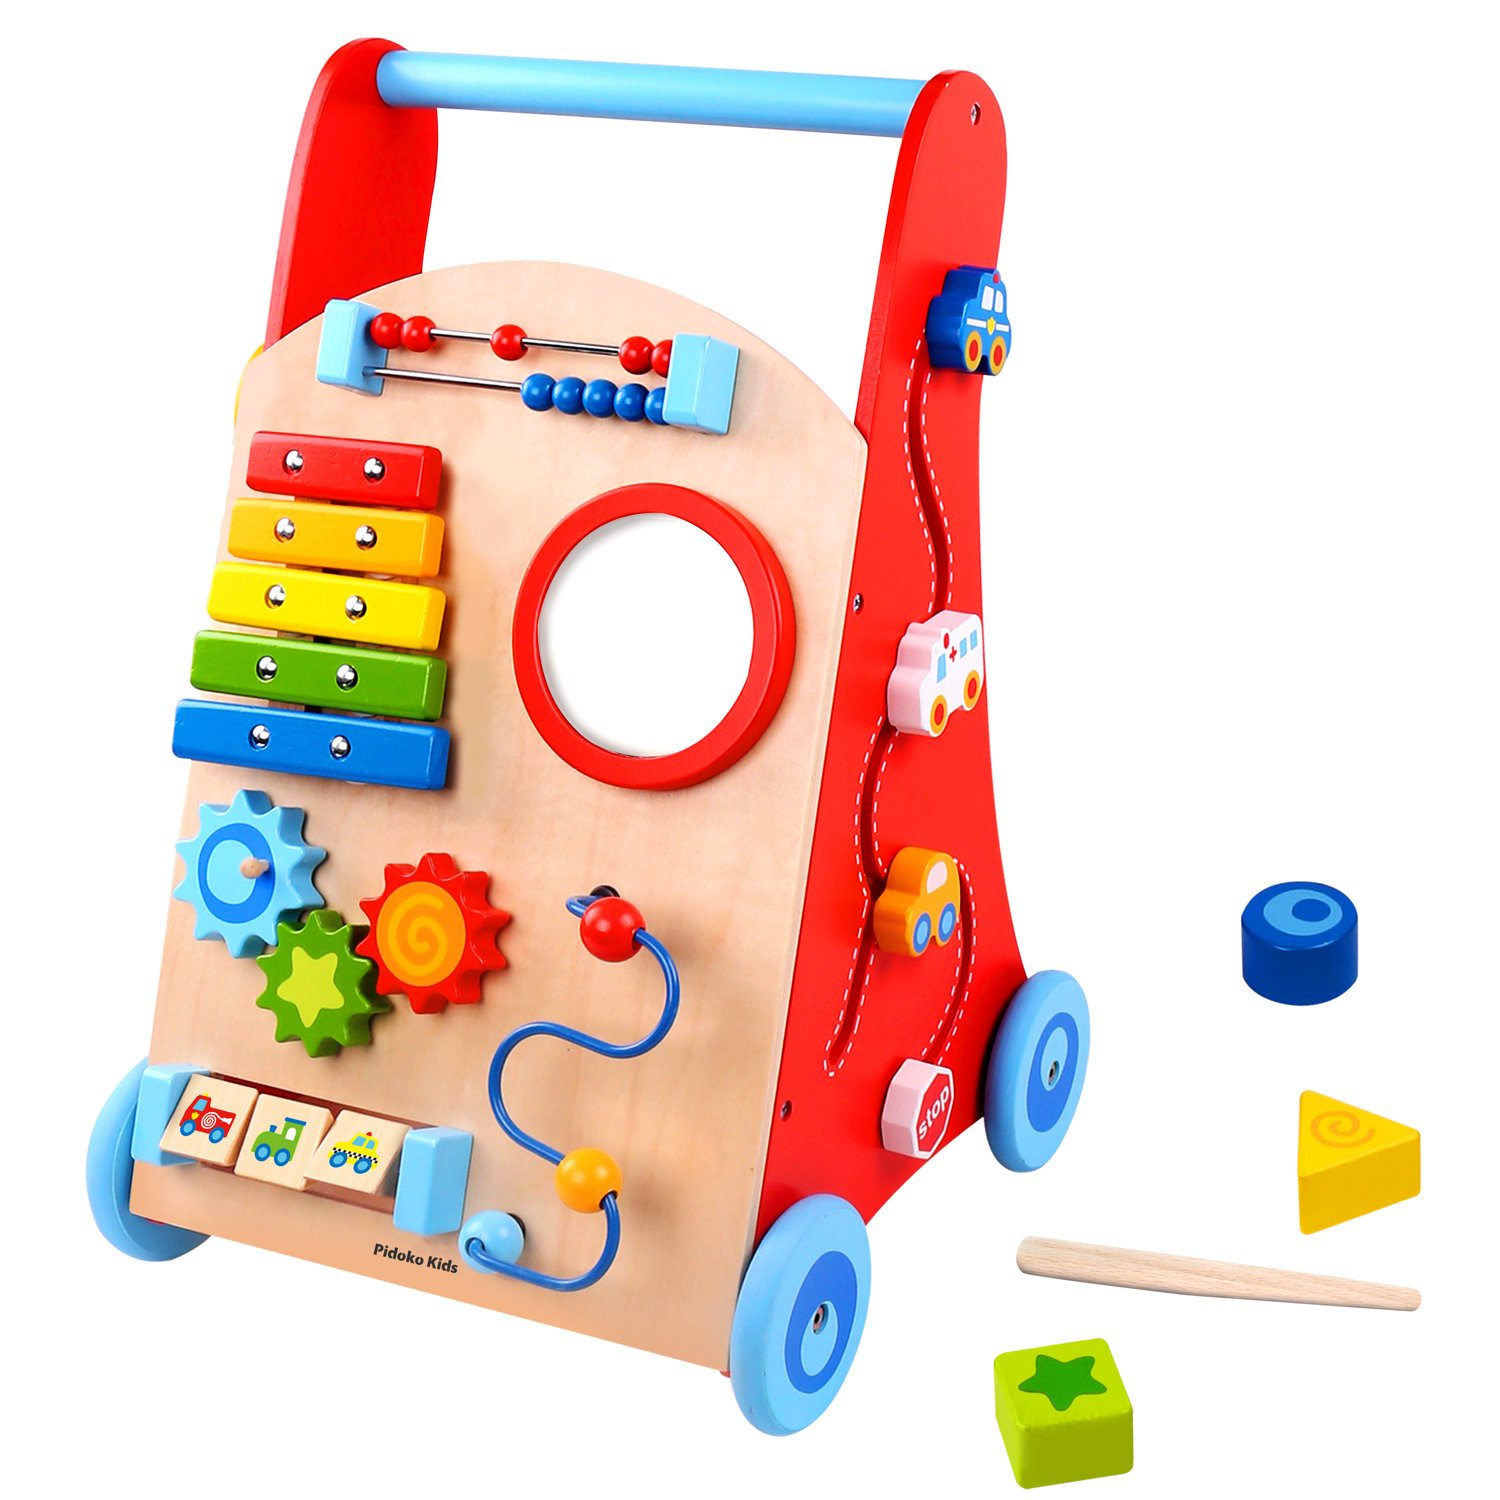 Pidoko Kids Baby Walker Cart, Red - Toddler Push Toys for Boys and Girls 18 Months and up - My First Learning Walker